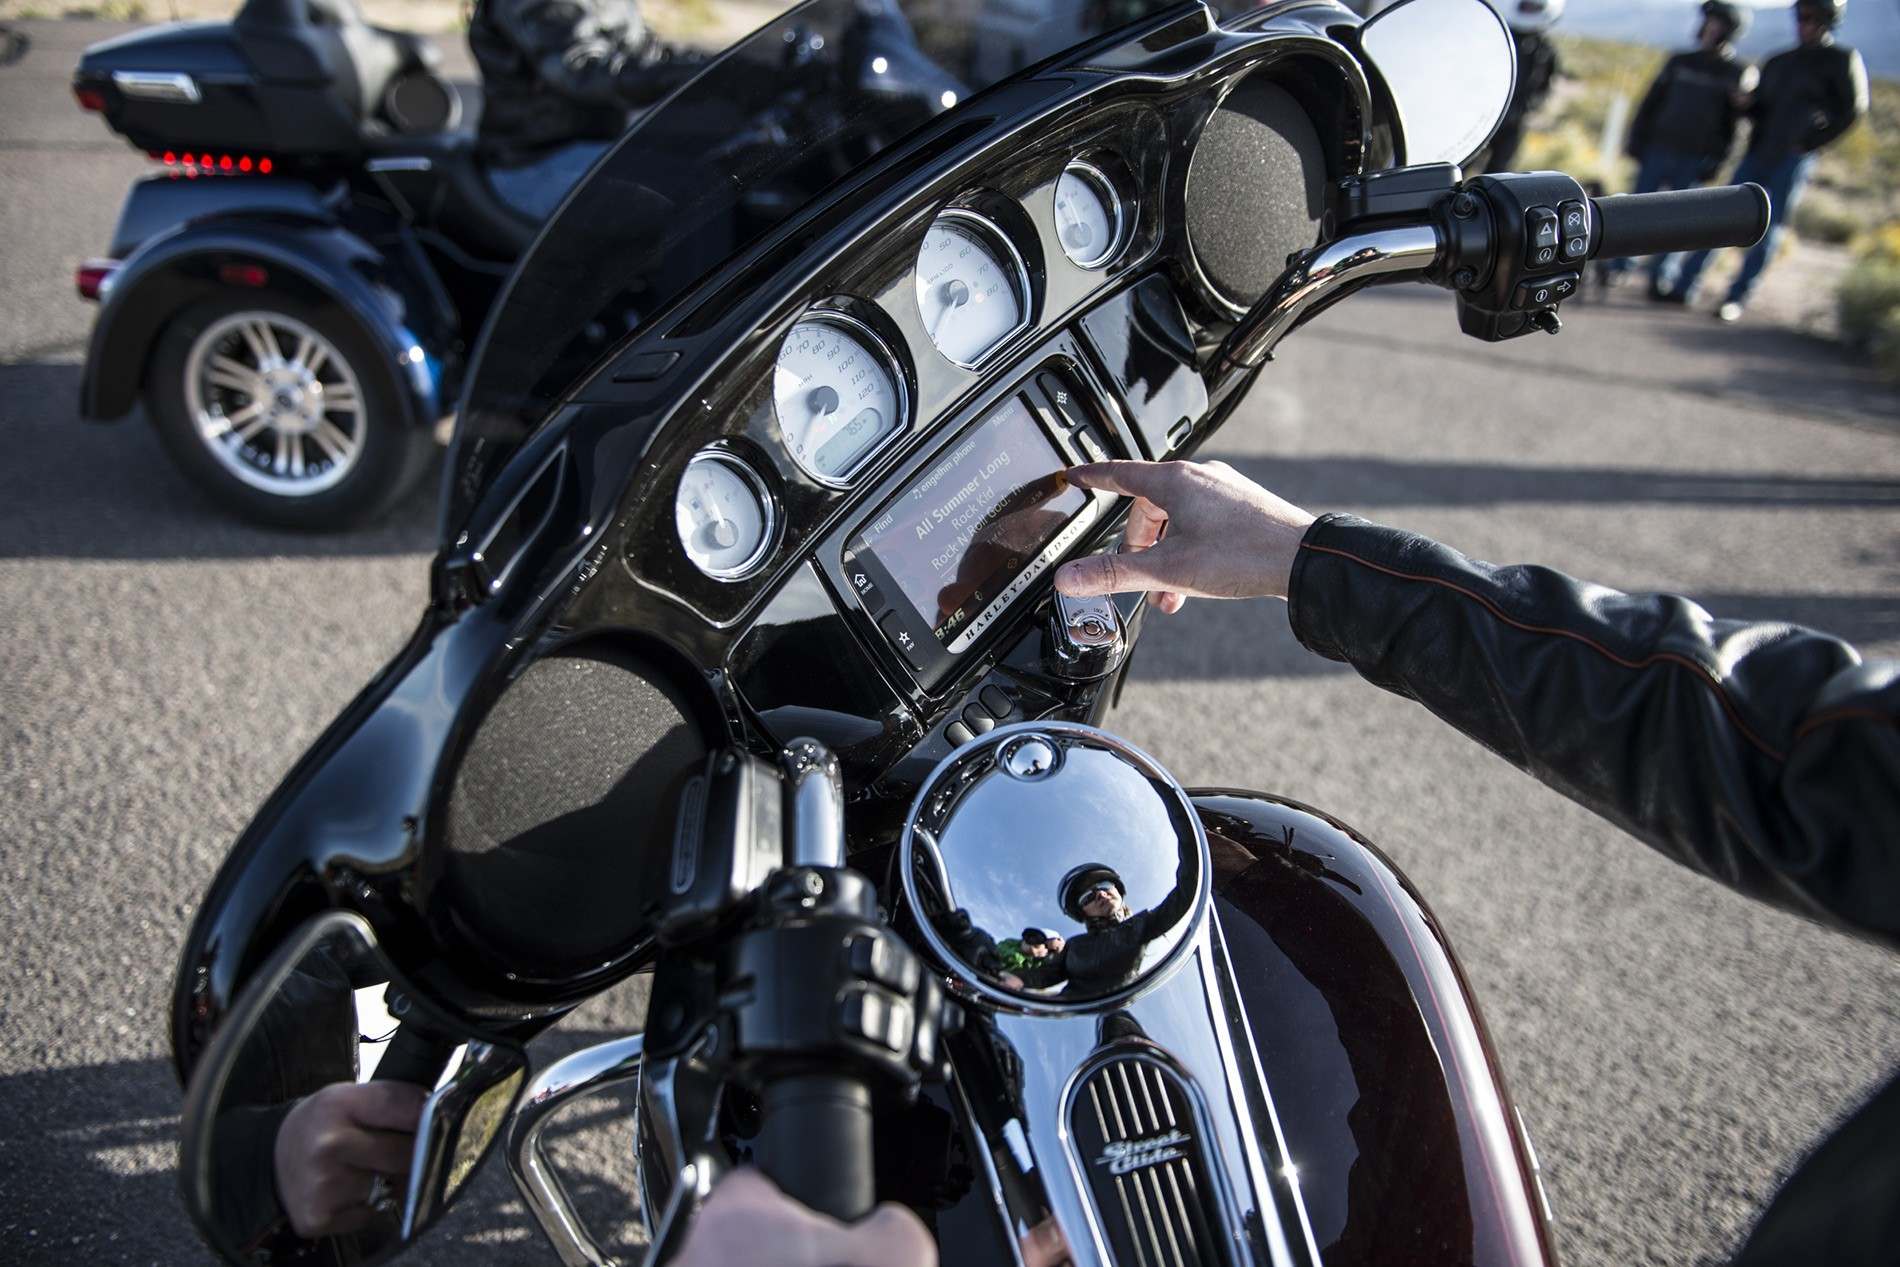 technological factors for harley davidson Harley-davidson: risk factors apr 918 harley-davidson inc to market within 18 months and will increase its investment in electric motorcycle technology.